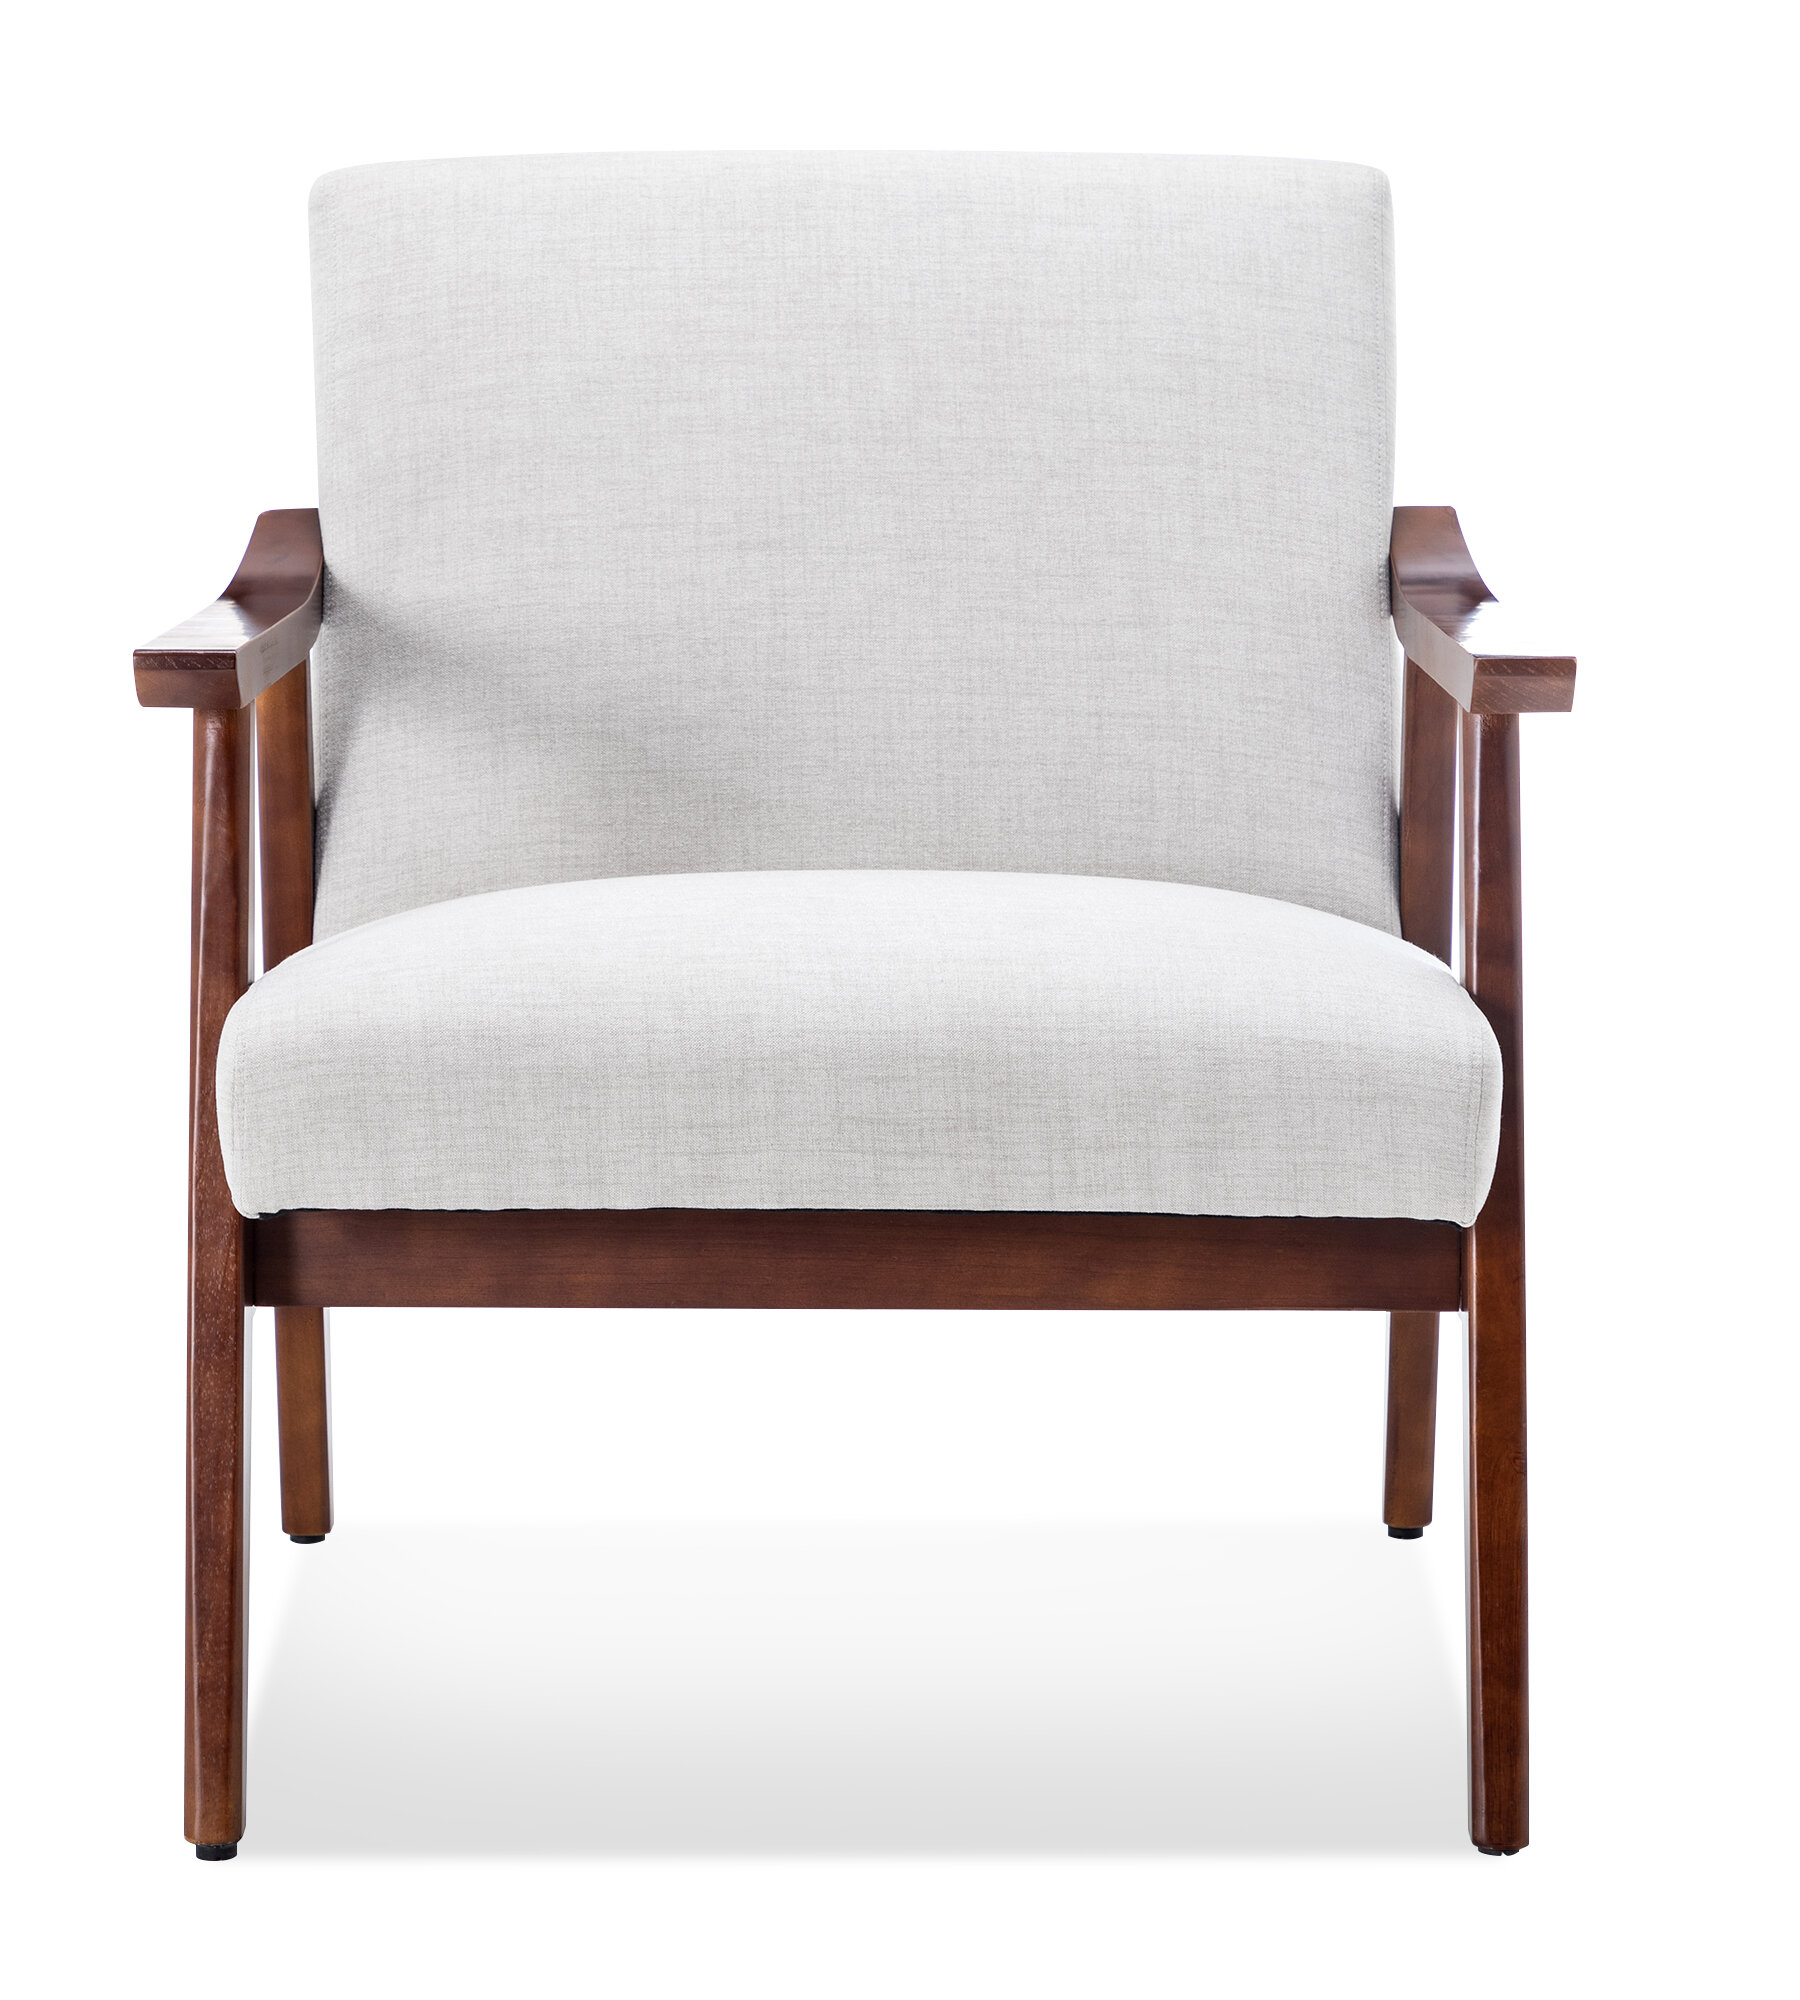 Arm Grey Accent Chairs You'Ll Love In 2021 | Wayfair With Dallin Arm Chairs (View 9 of 15)